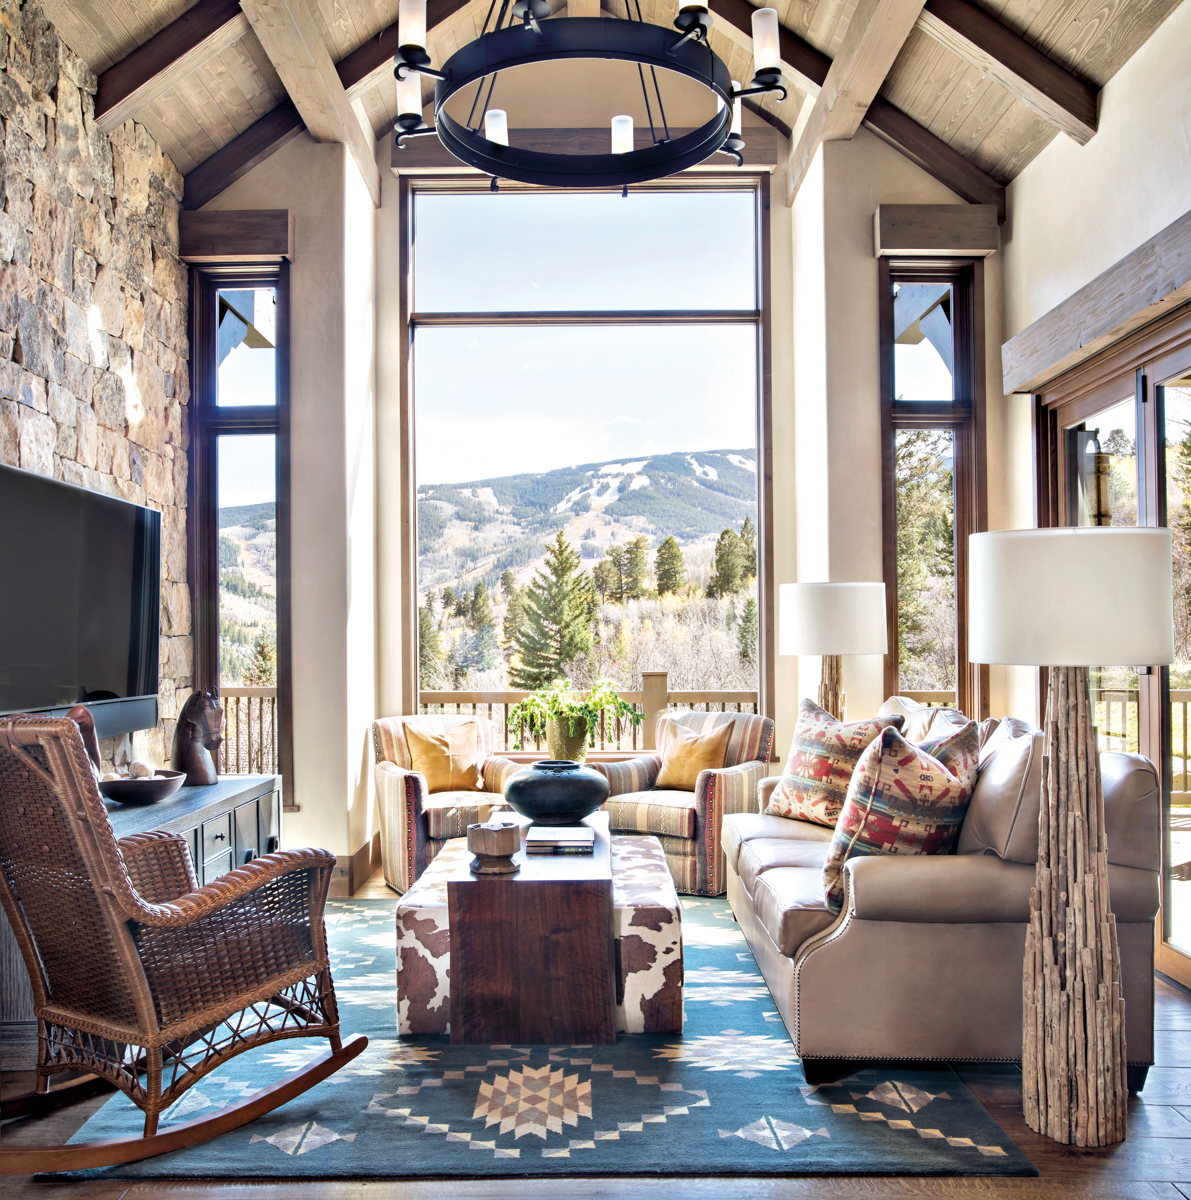 living room with views of mountains